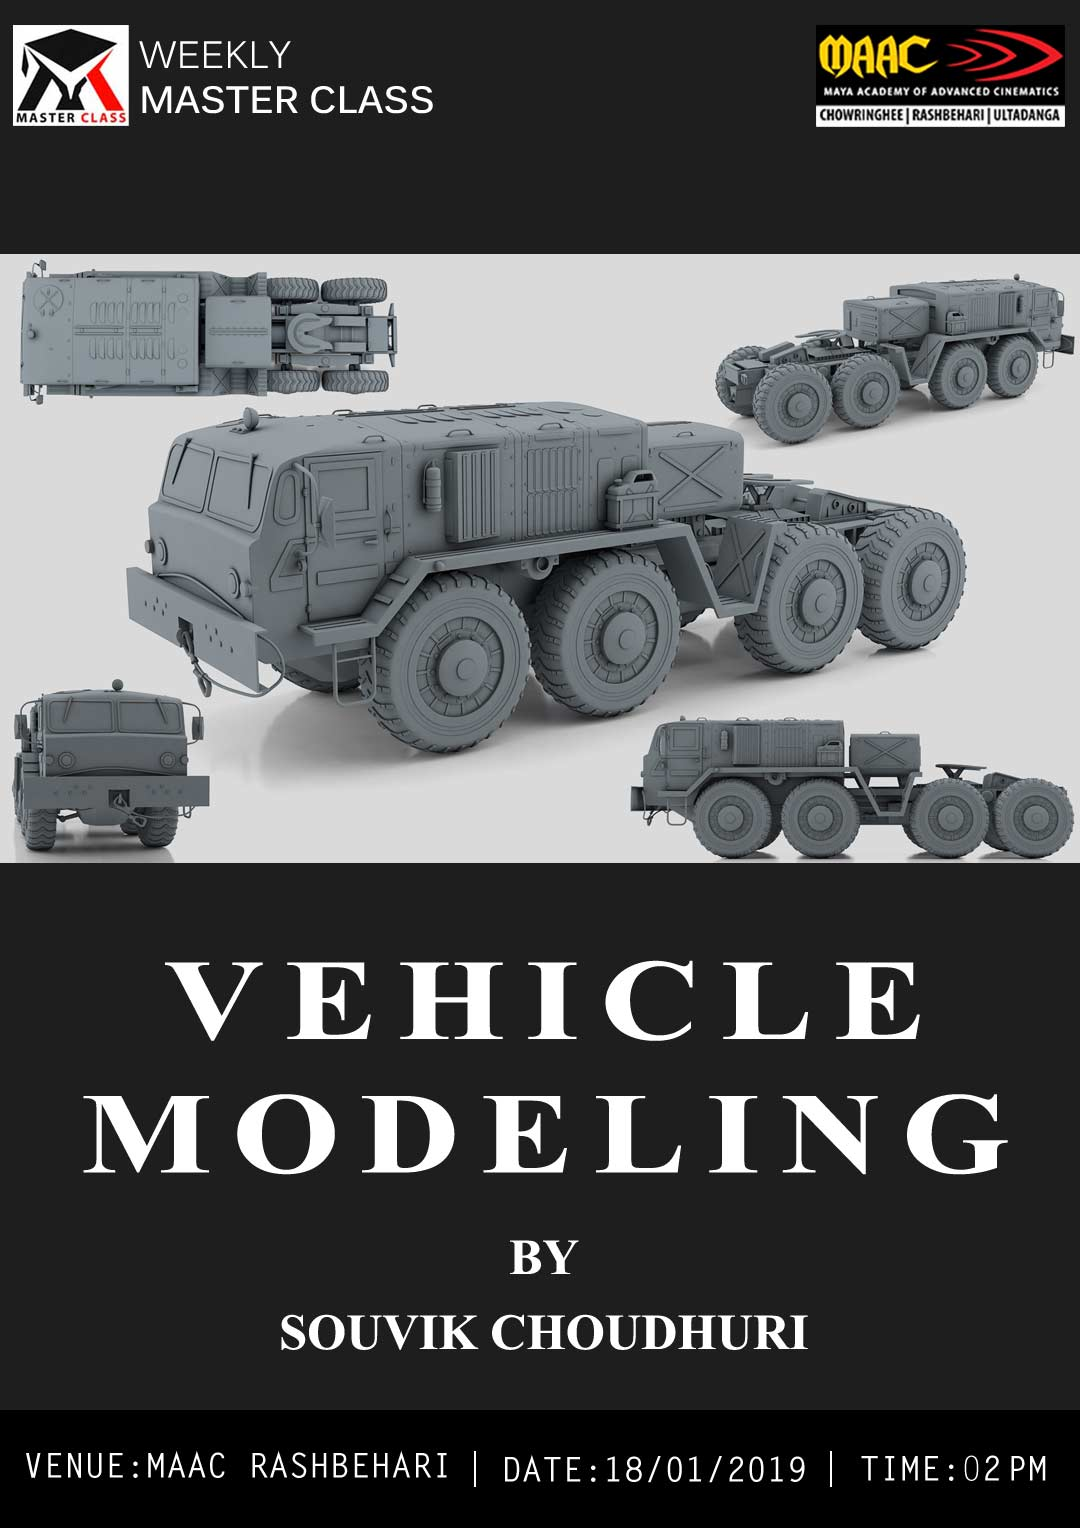 Weekly Master Class on Vehicle Modeling